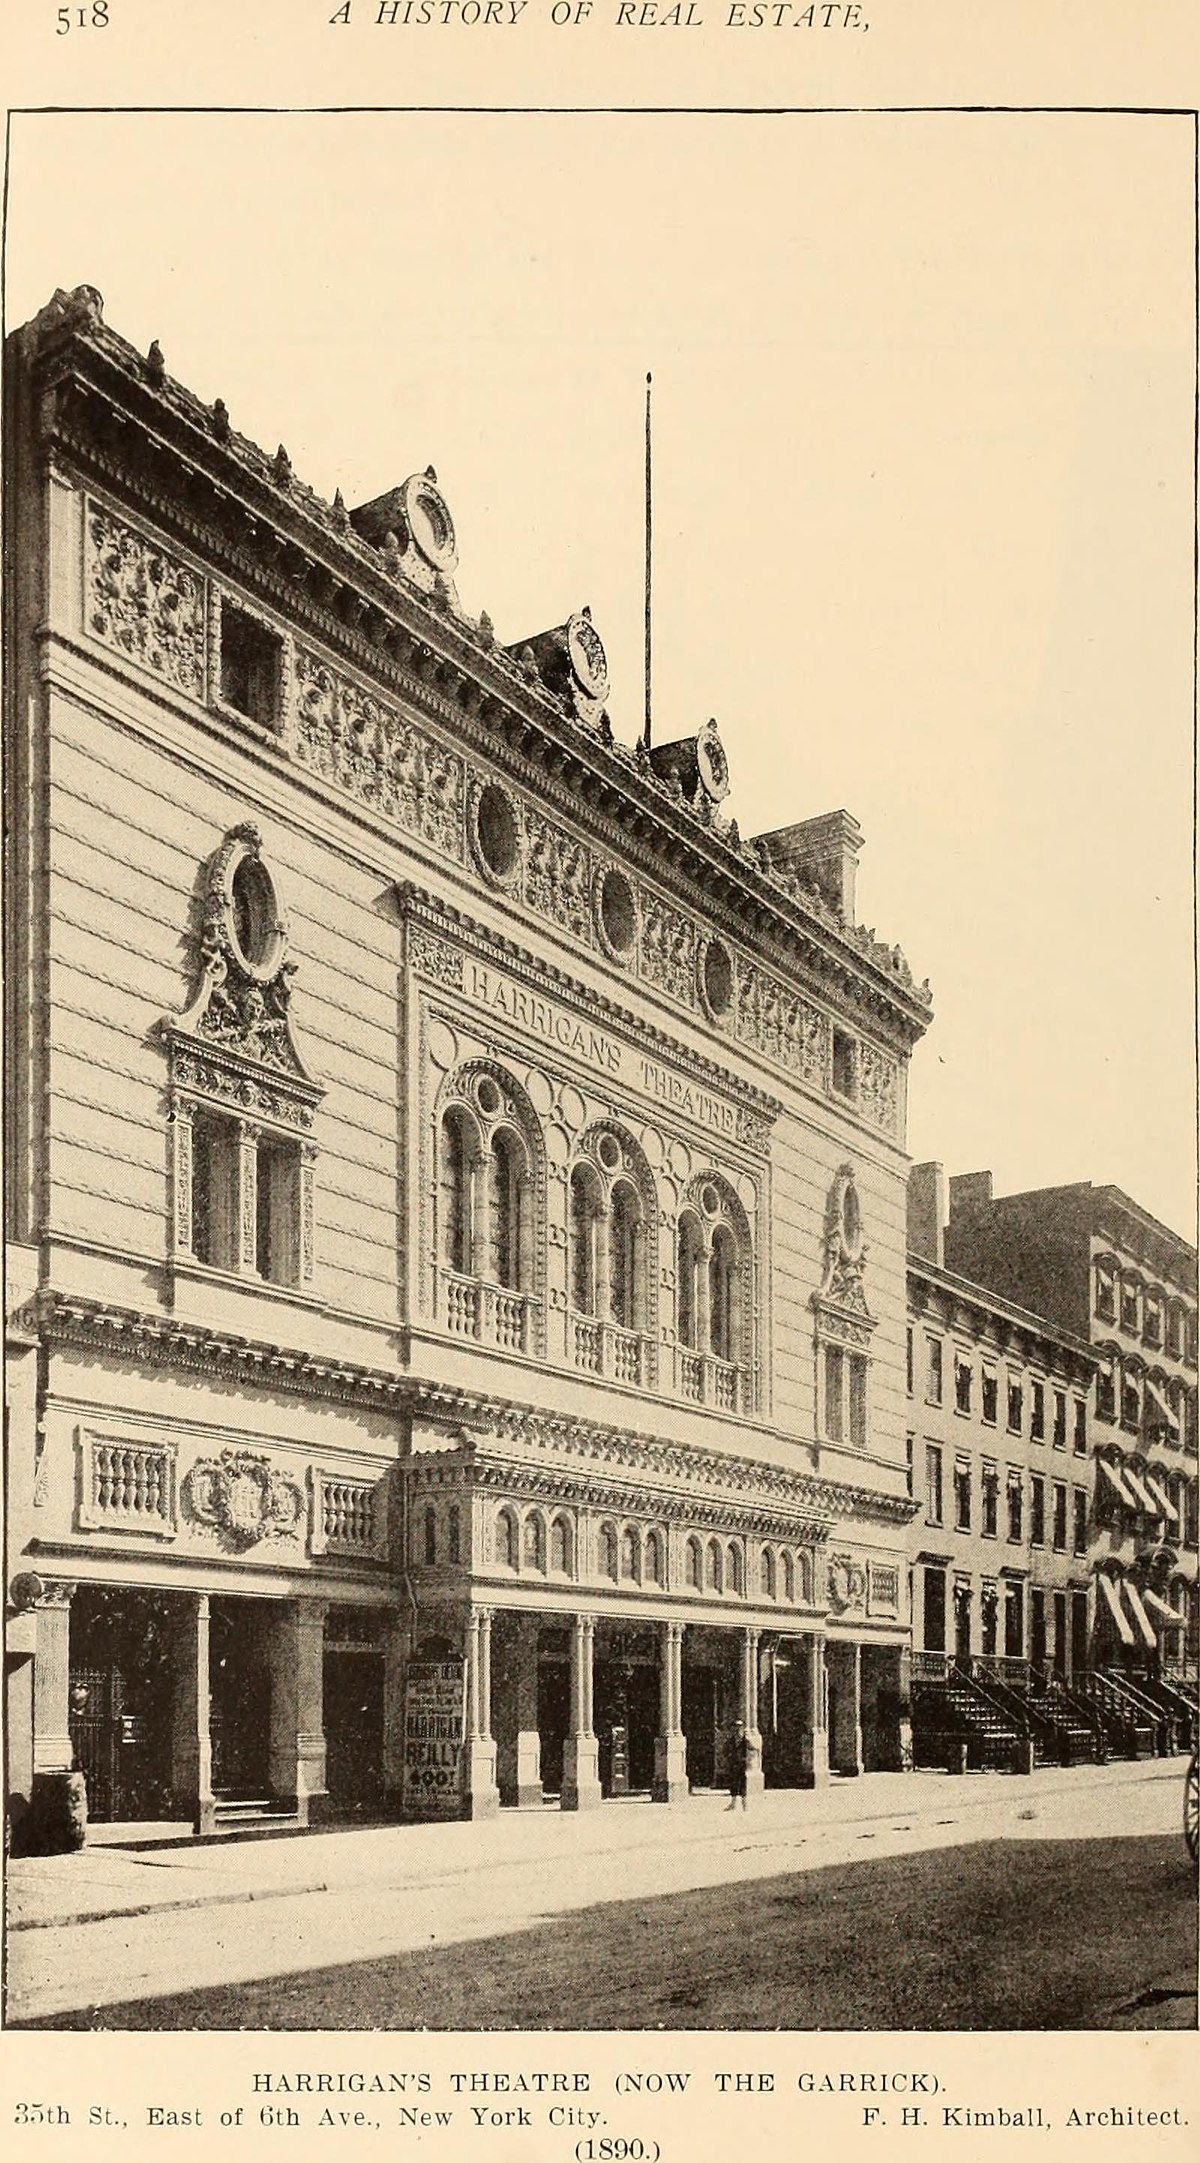 Garrick Theatre (New York City)